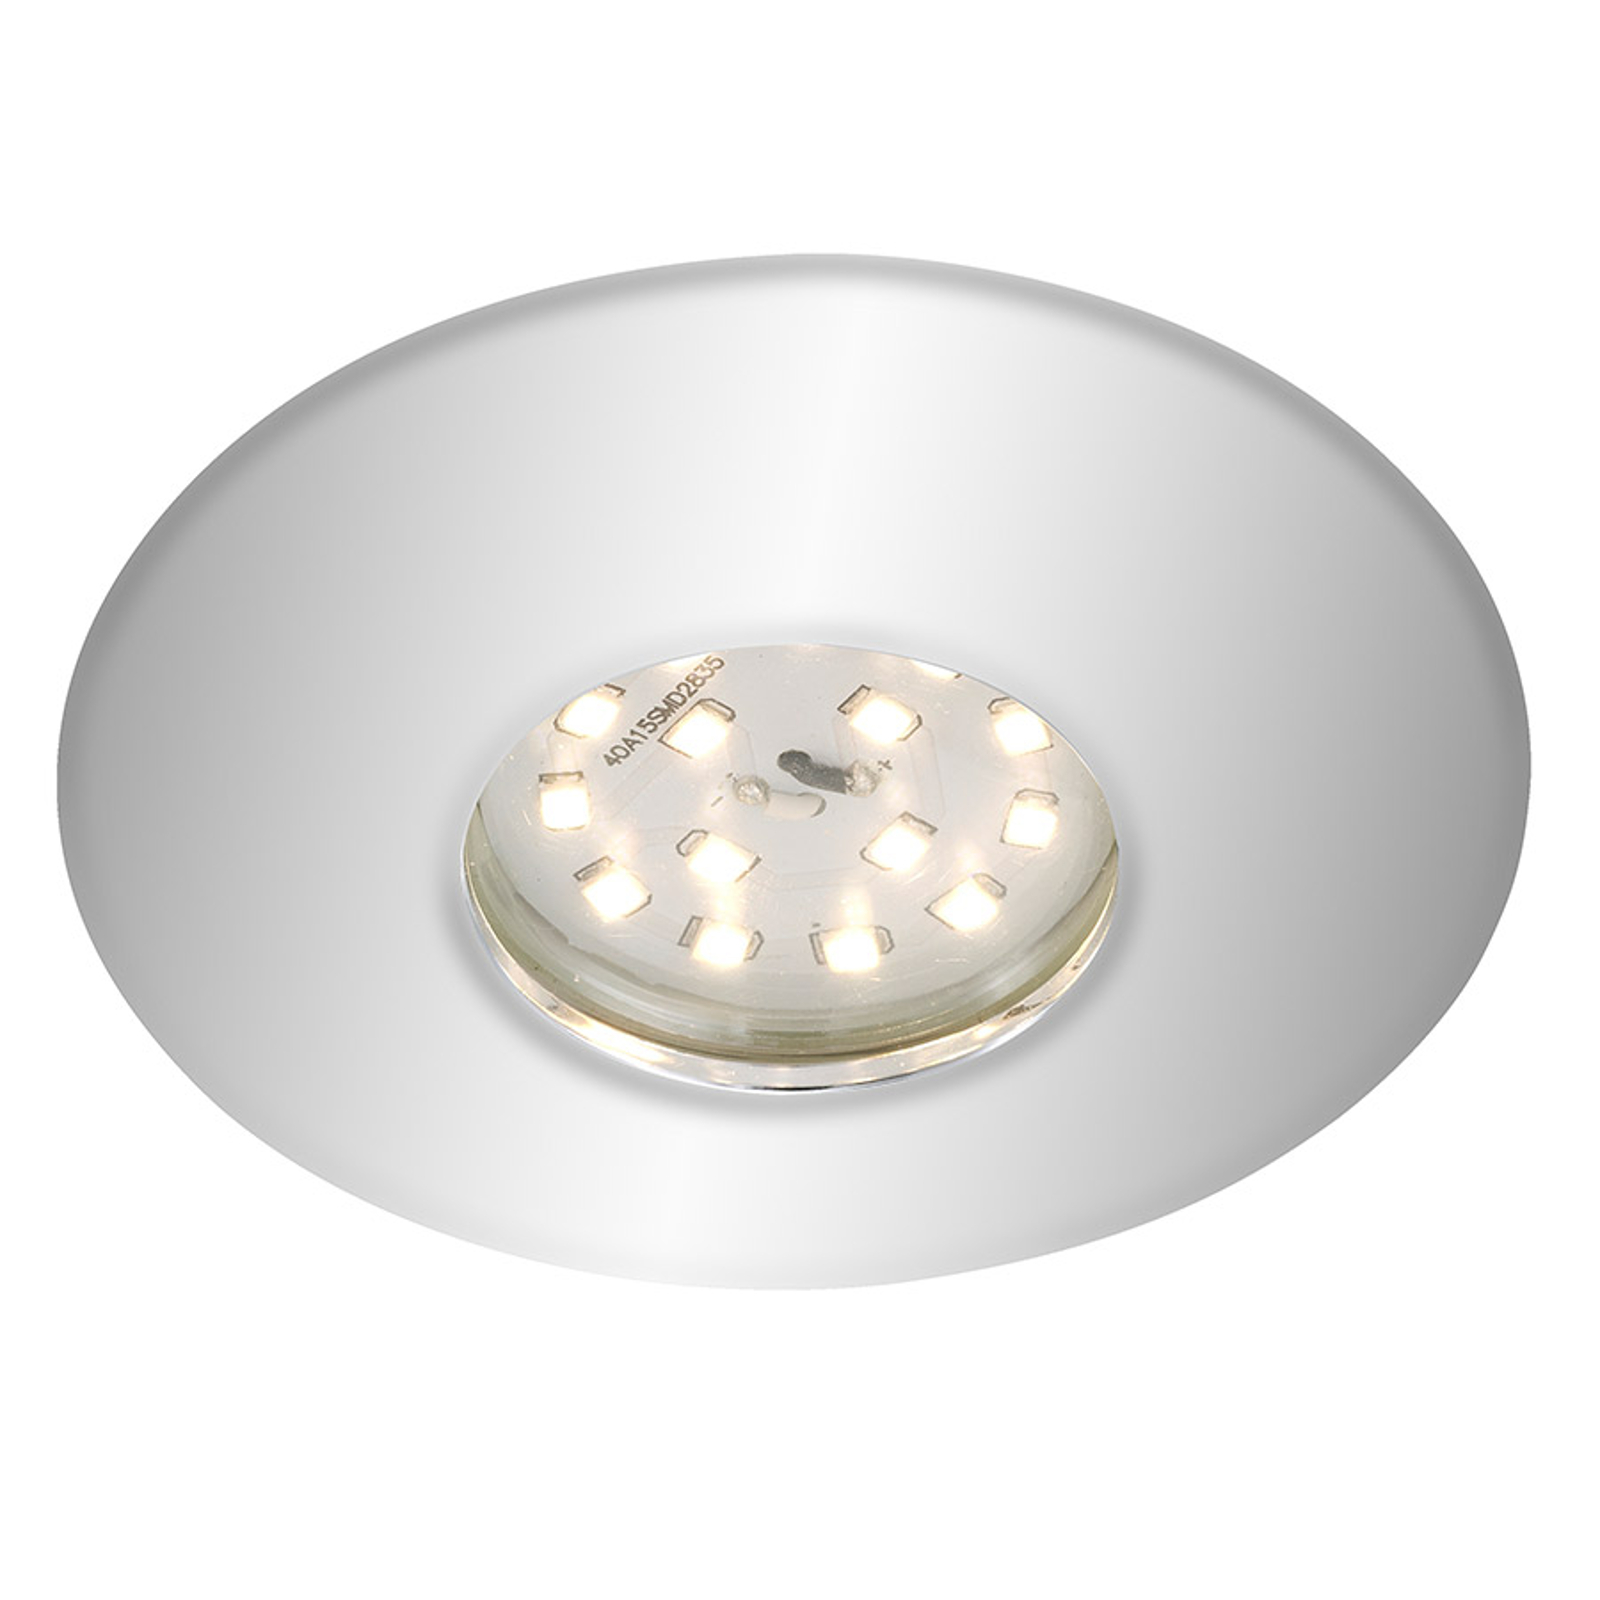 Shower LED-indbygningsspot, forkromet, IP65